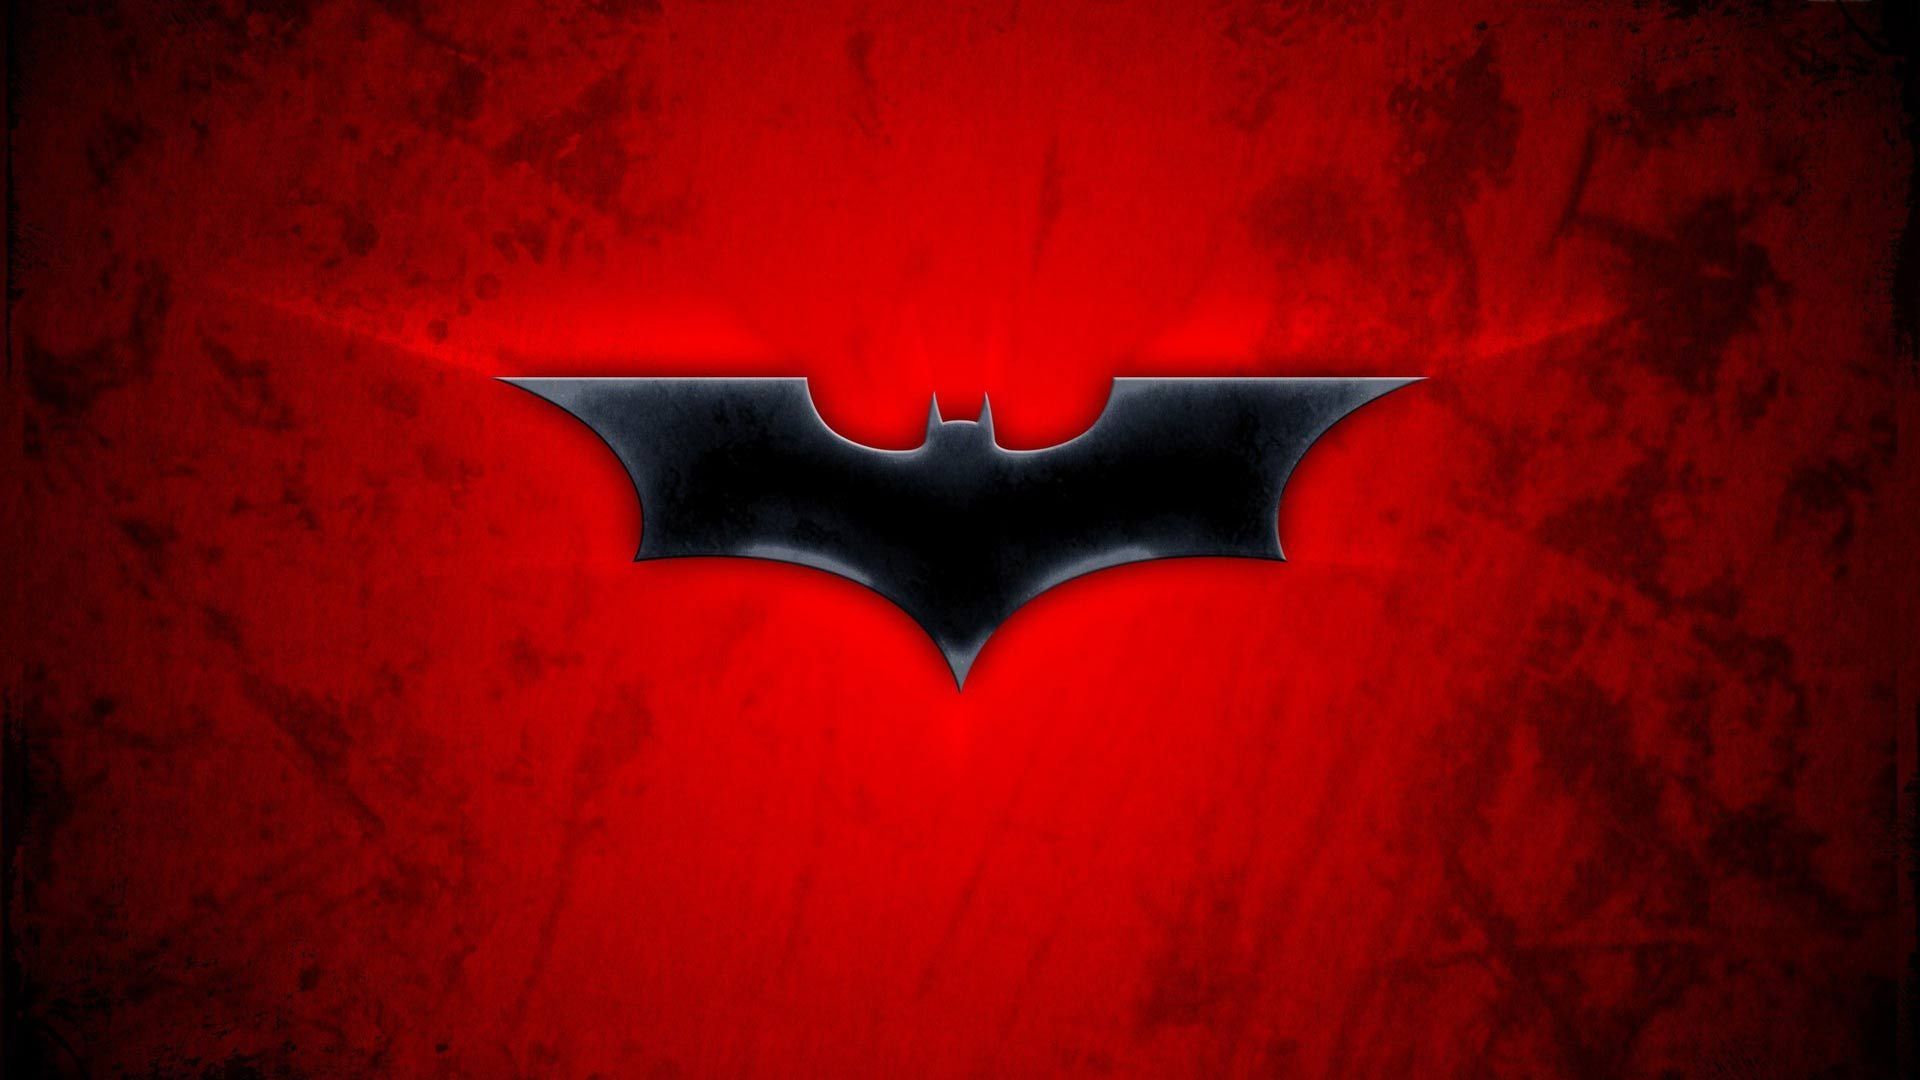 Batman Red Movie Wallpaper.